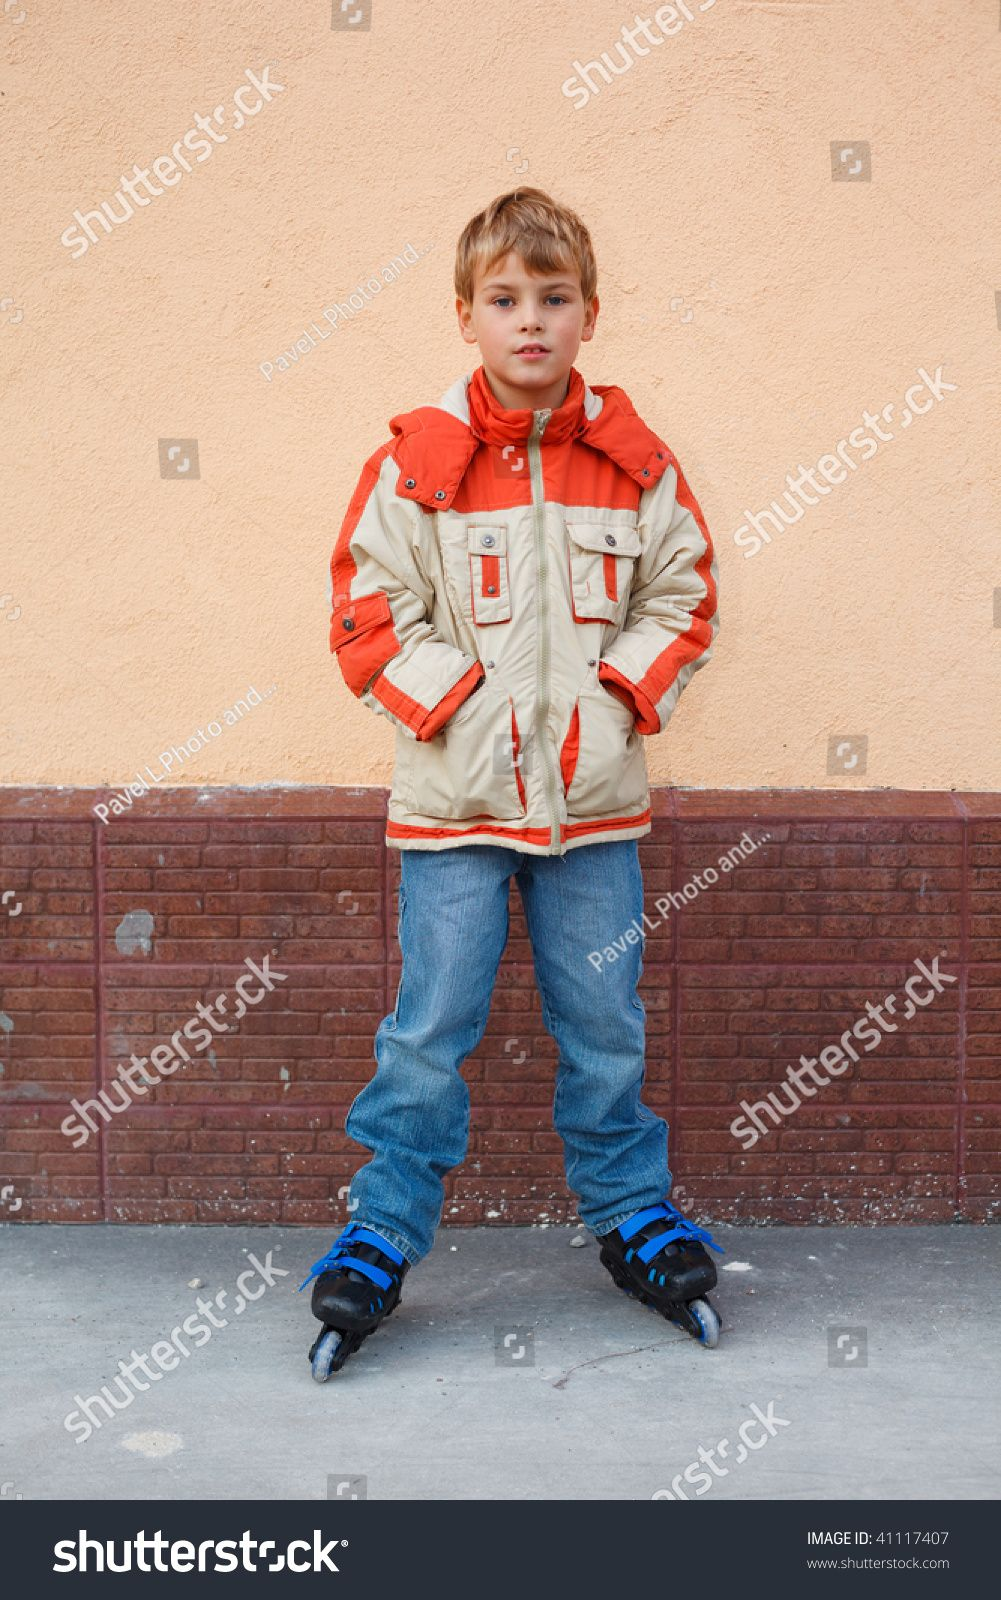 boy standing on roller skates in the yard #Ad , #affiliate, #standing#boy#roller#yard